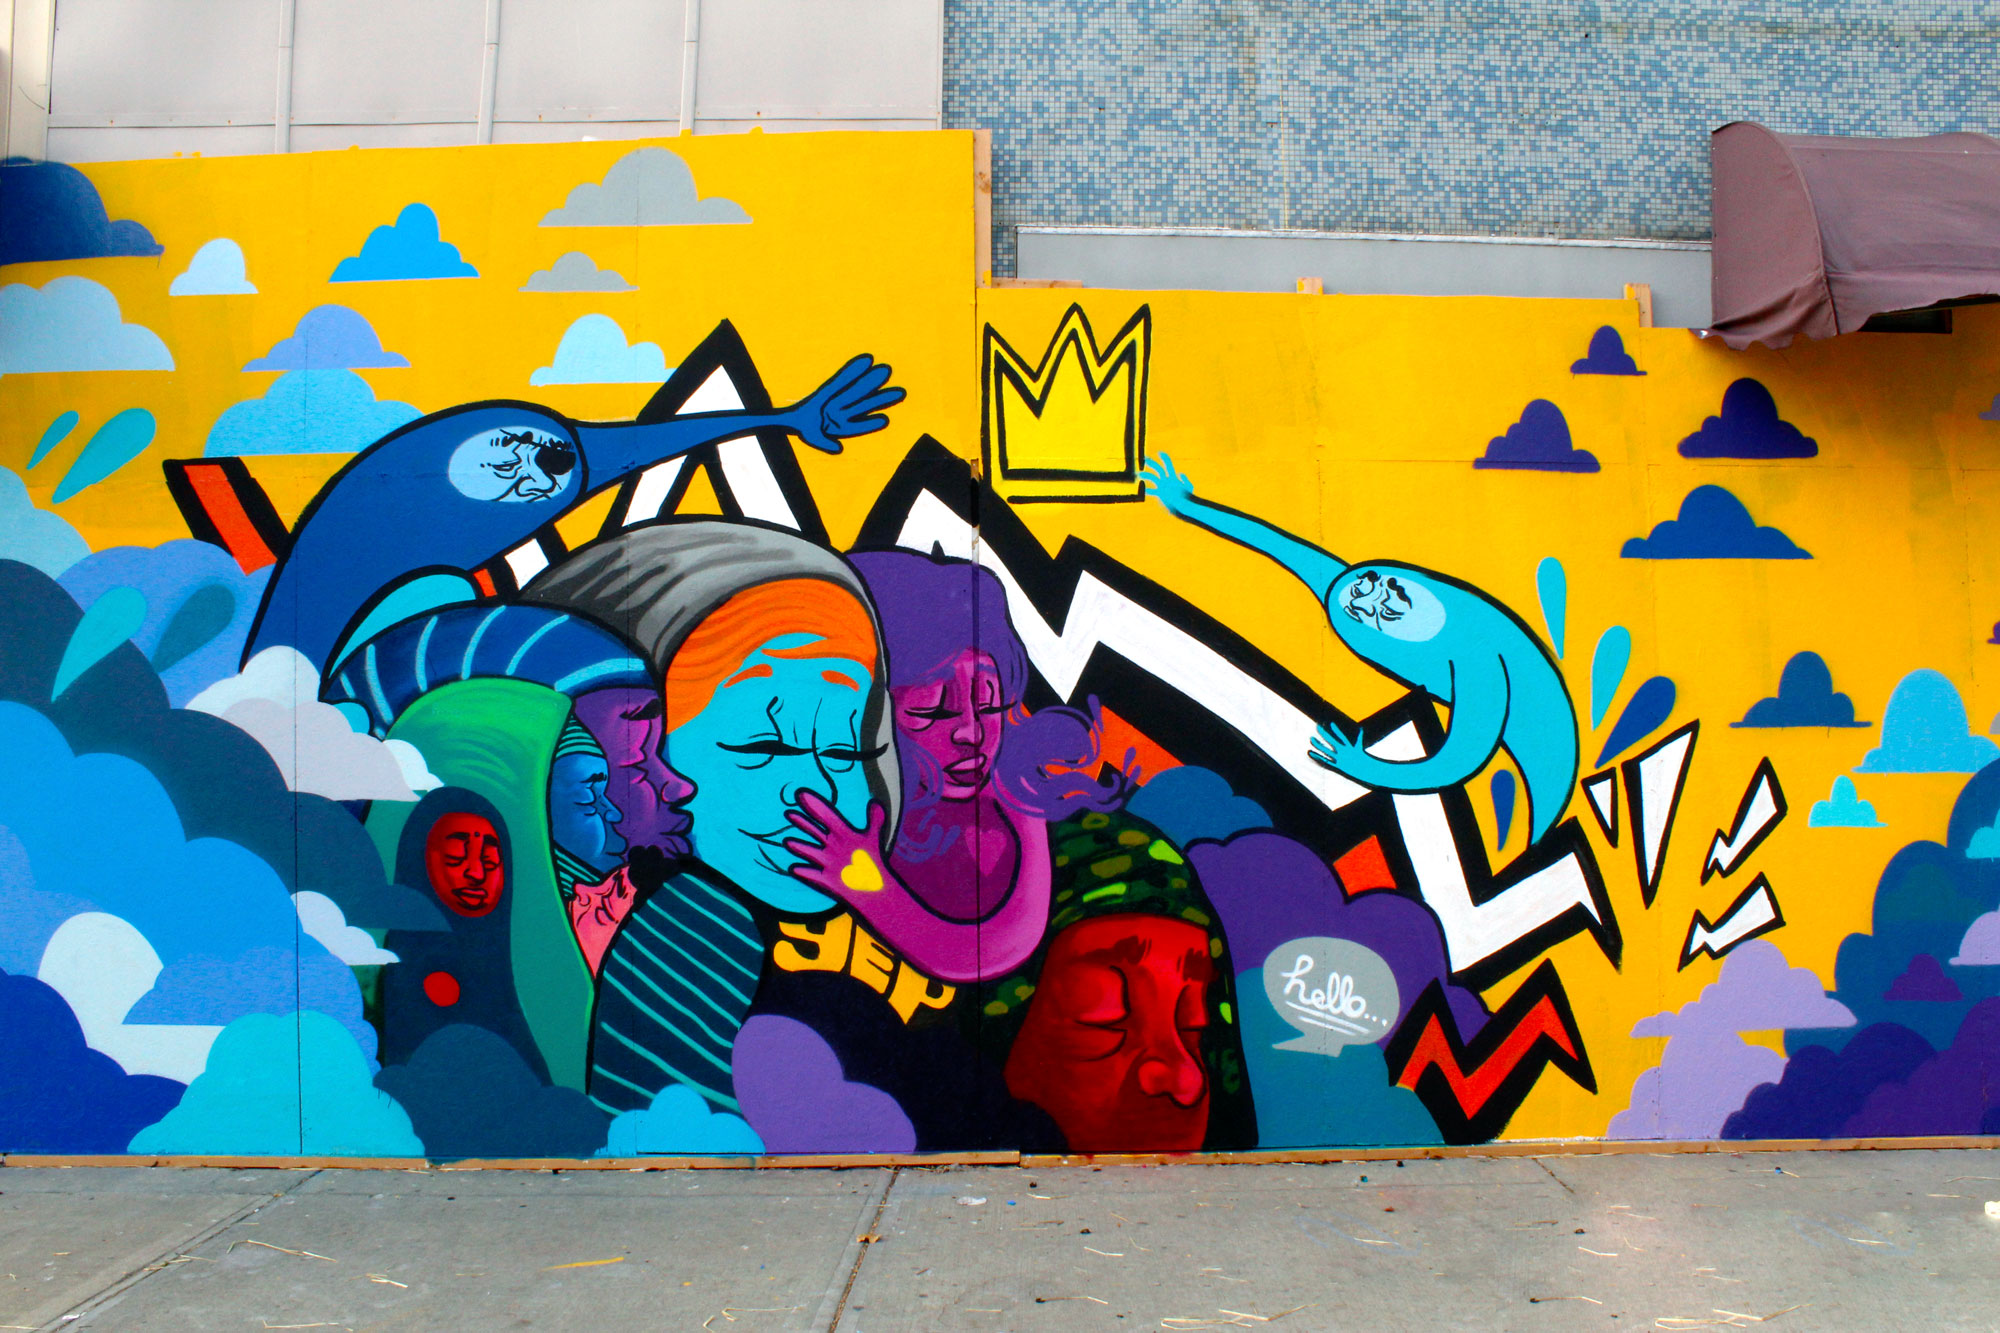 Mural created by JT Daniels in collaboration with the Troost Market Collective